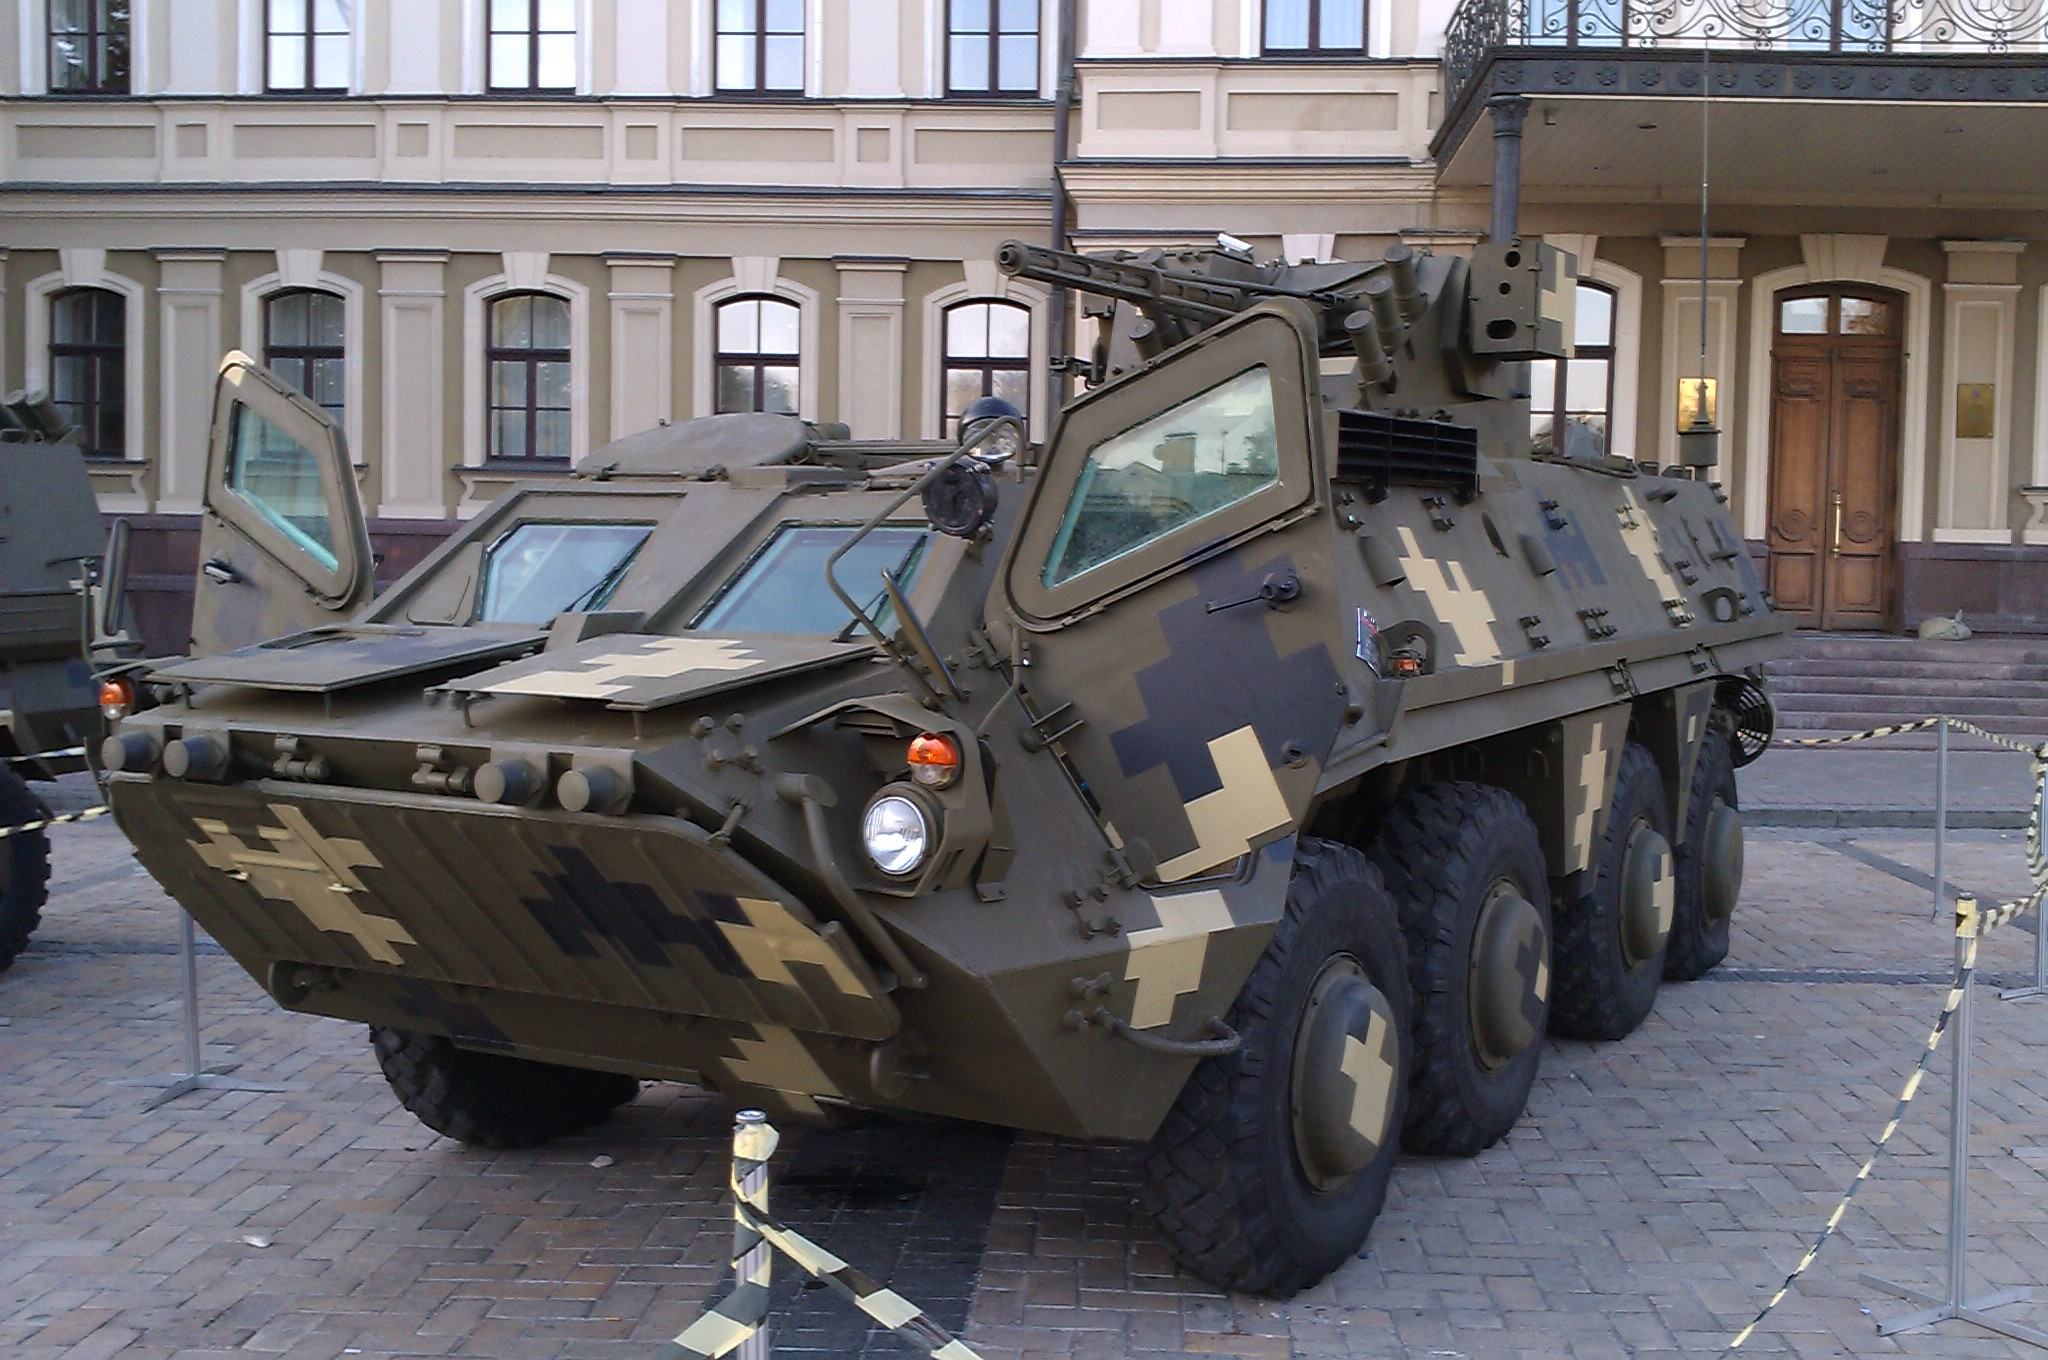 Depiction of BTR-4